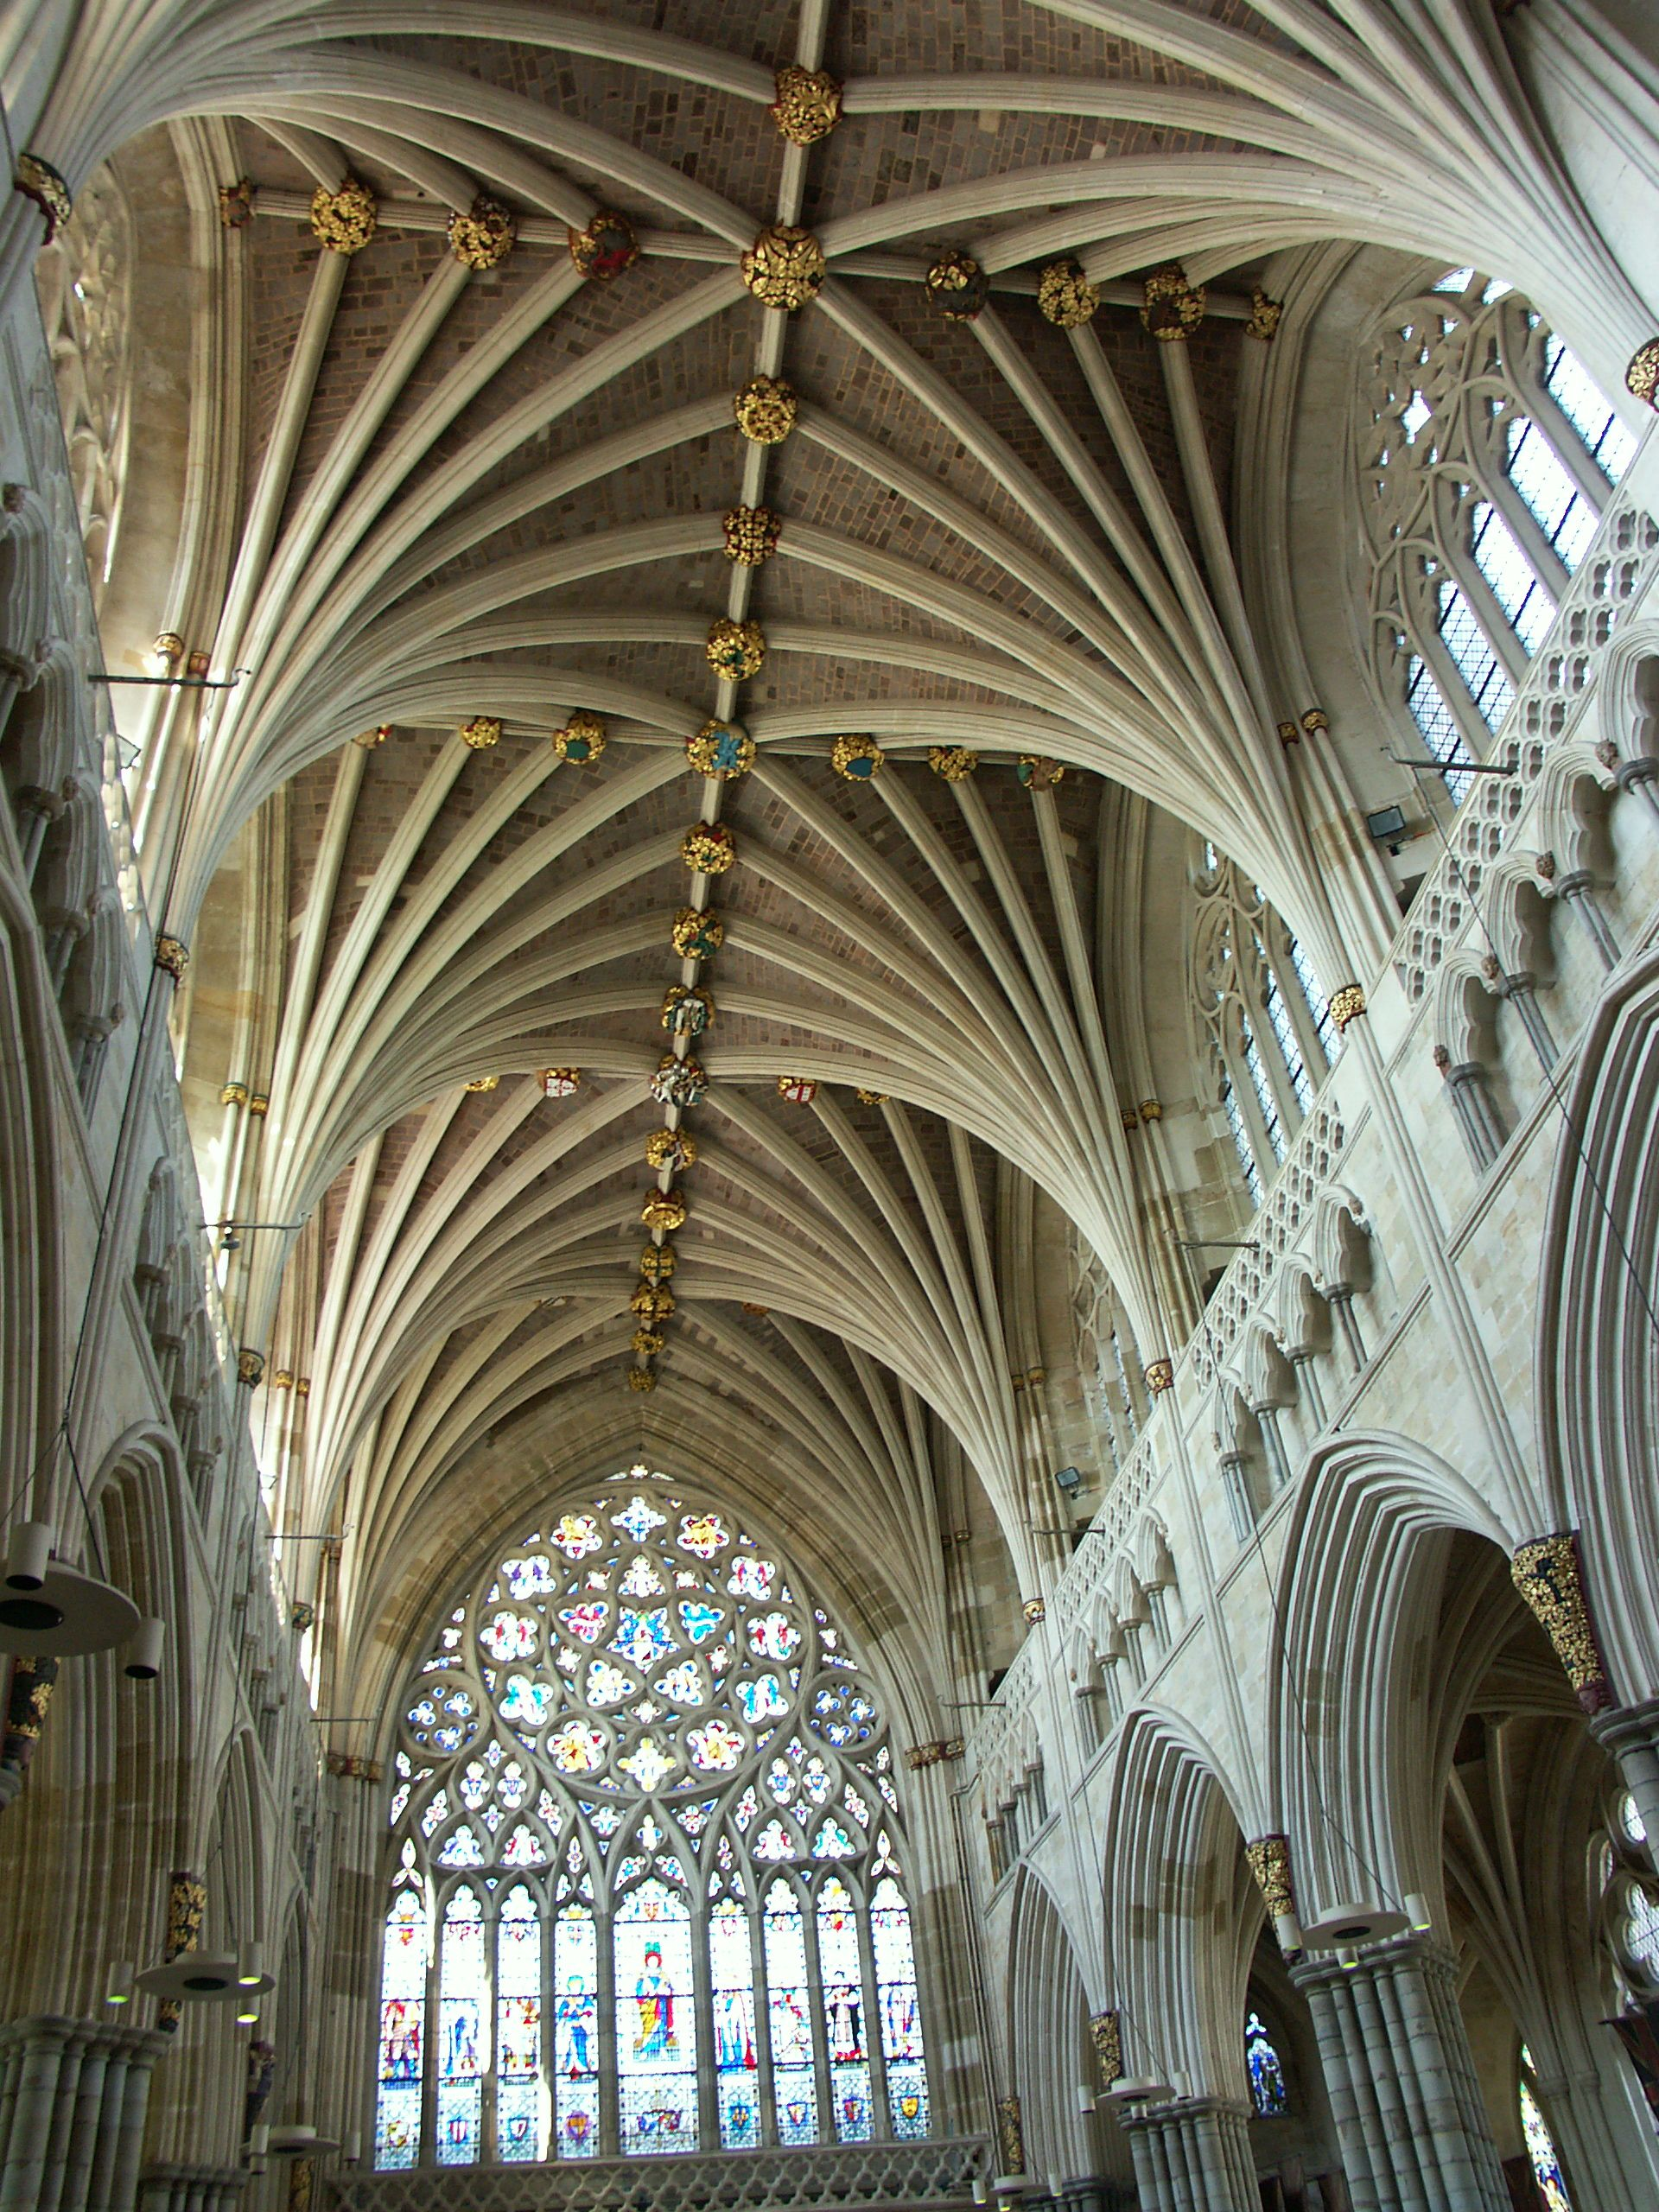 Exeter Cathedral The Longest Uninterrupted Vaulted Ceiling In England Completed Ca 1400 Uncredited Photo Exeter Cathedral Cathedral Gothic Architecture